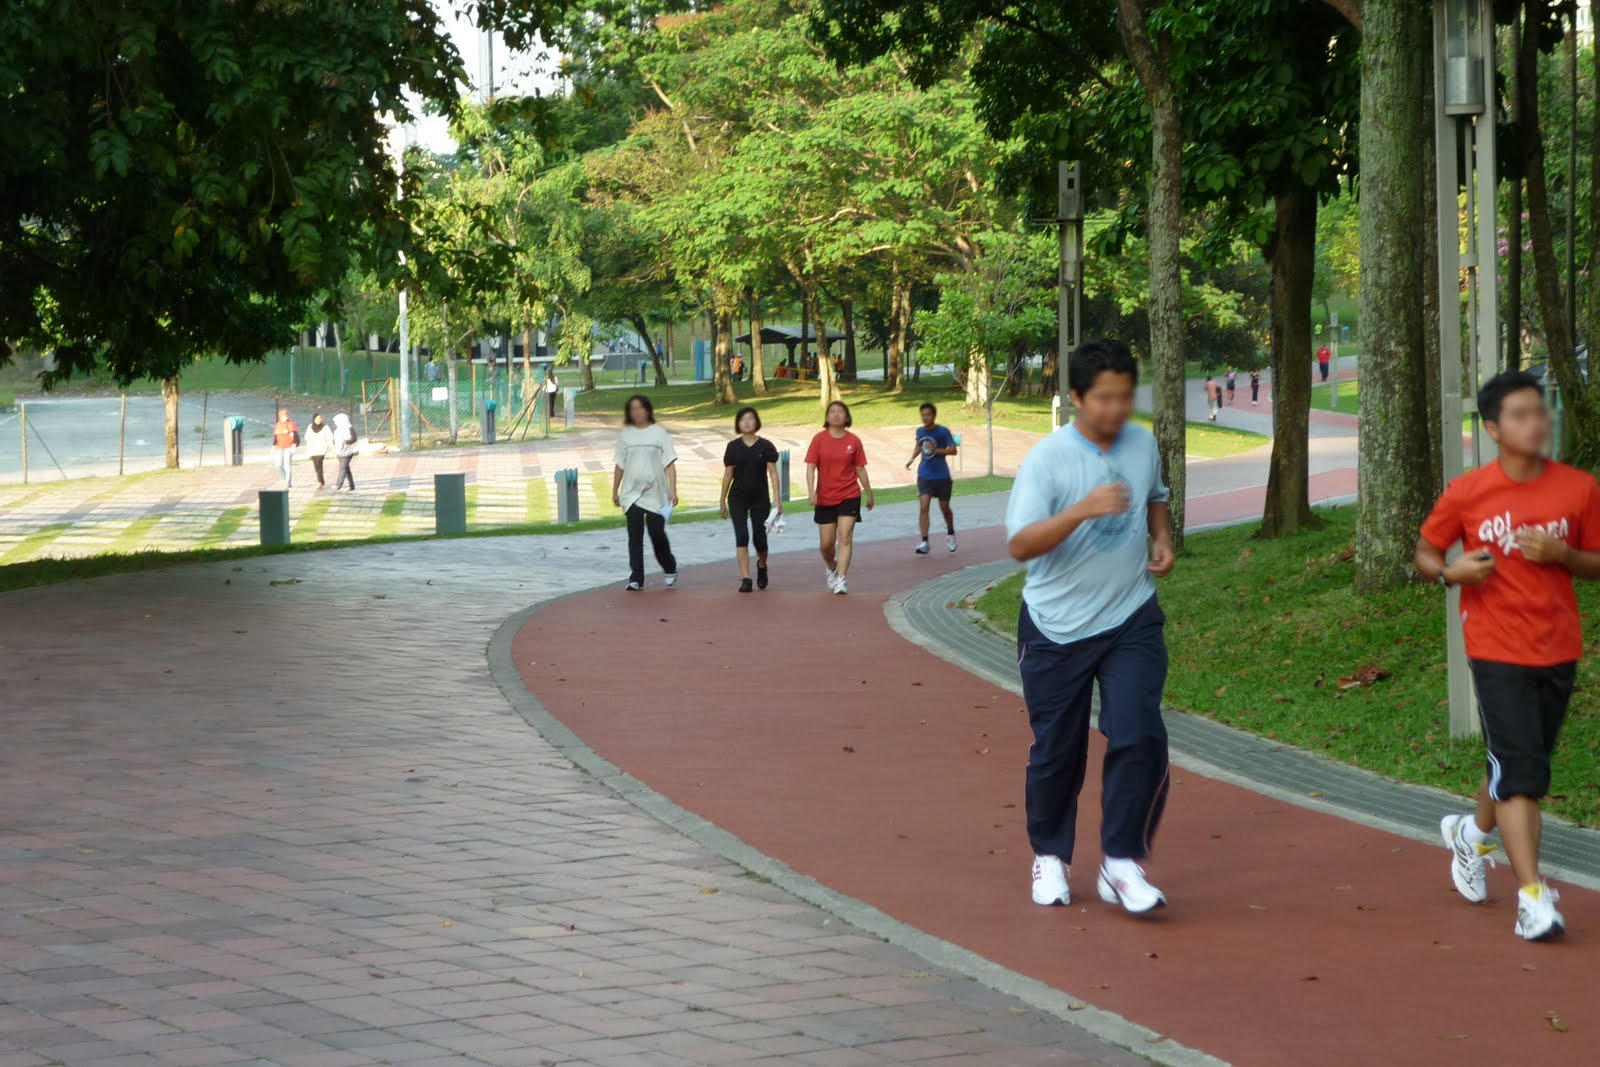 Why do we run anti-clockwise in a jogging track?